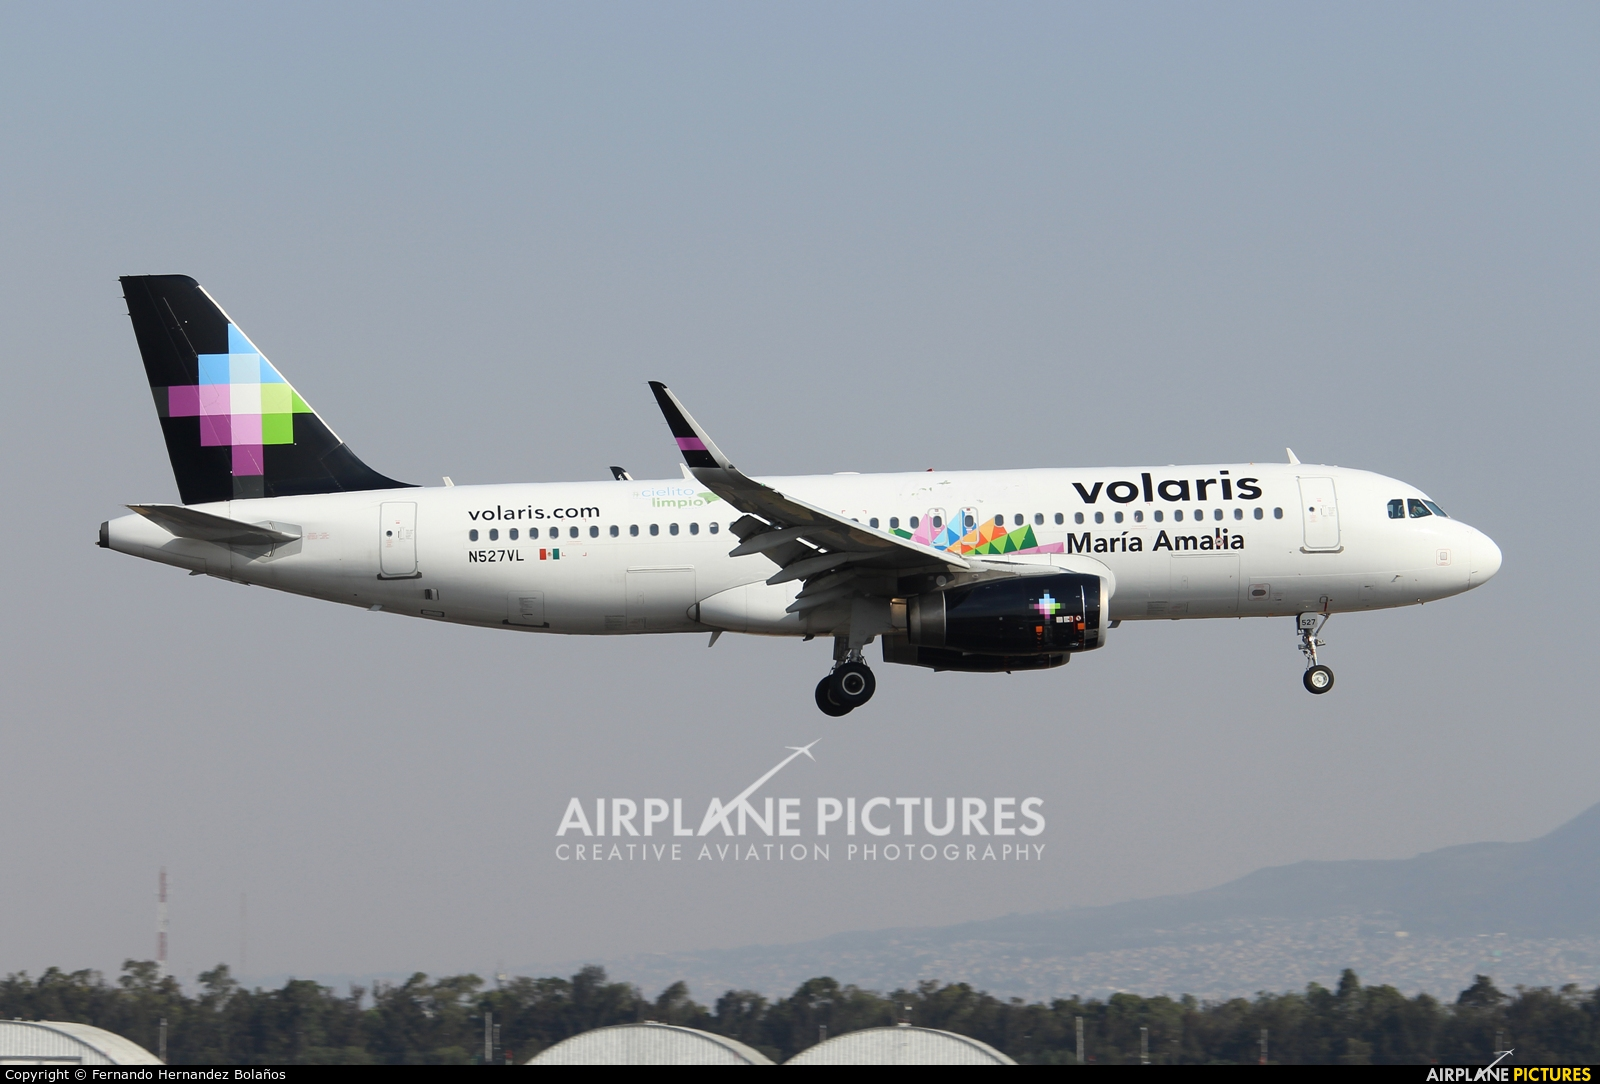 N527VL - Volaris Costa Rica Airbus A320 at Mexico City